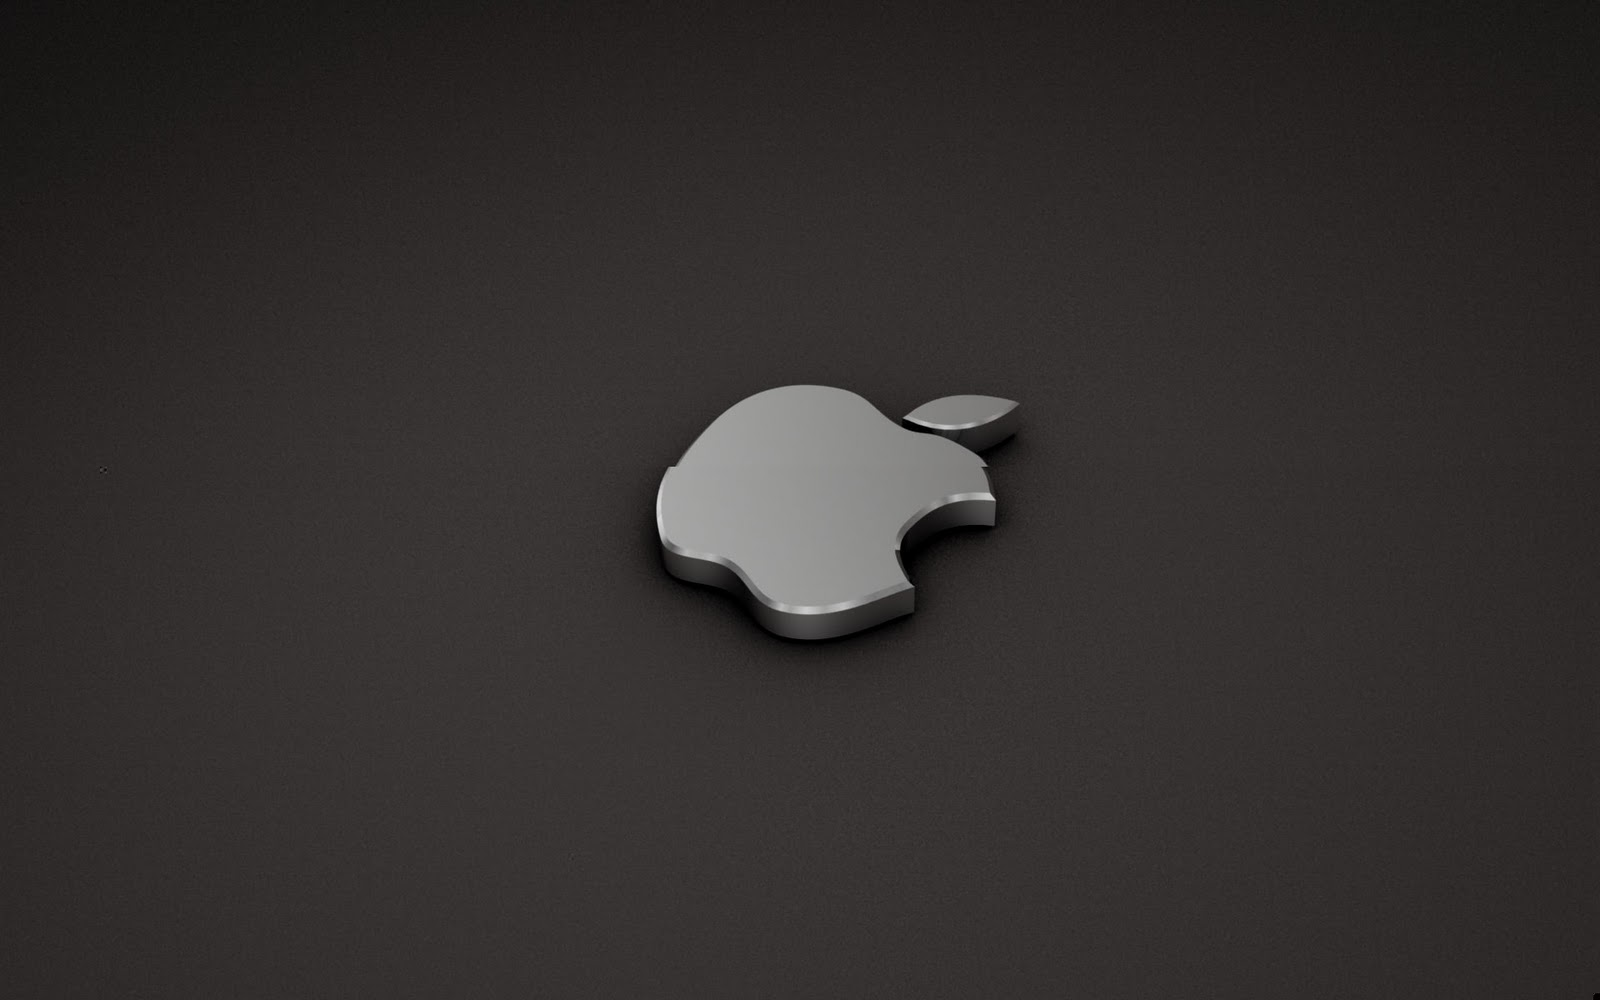 Apple Logo Wallpaper New Collections New Best Wallpapers 2011 1600x1000